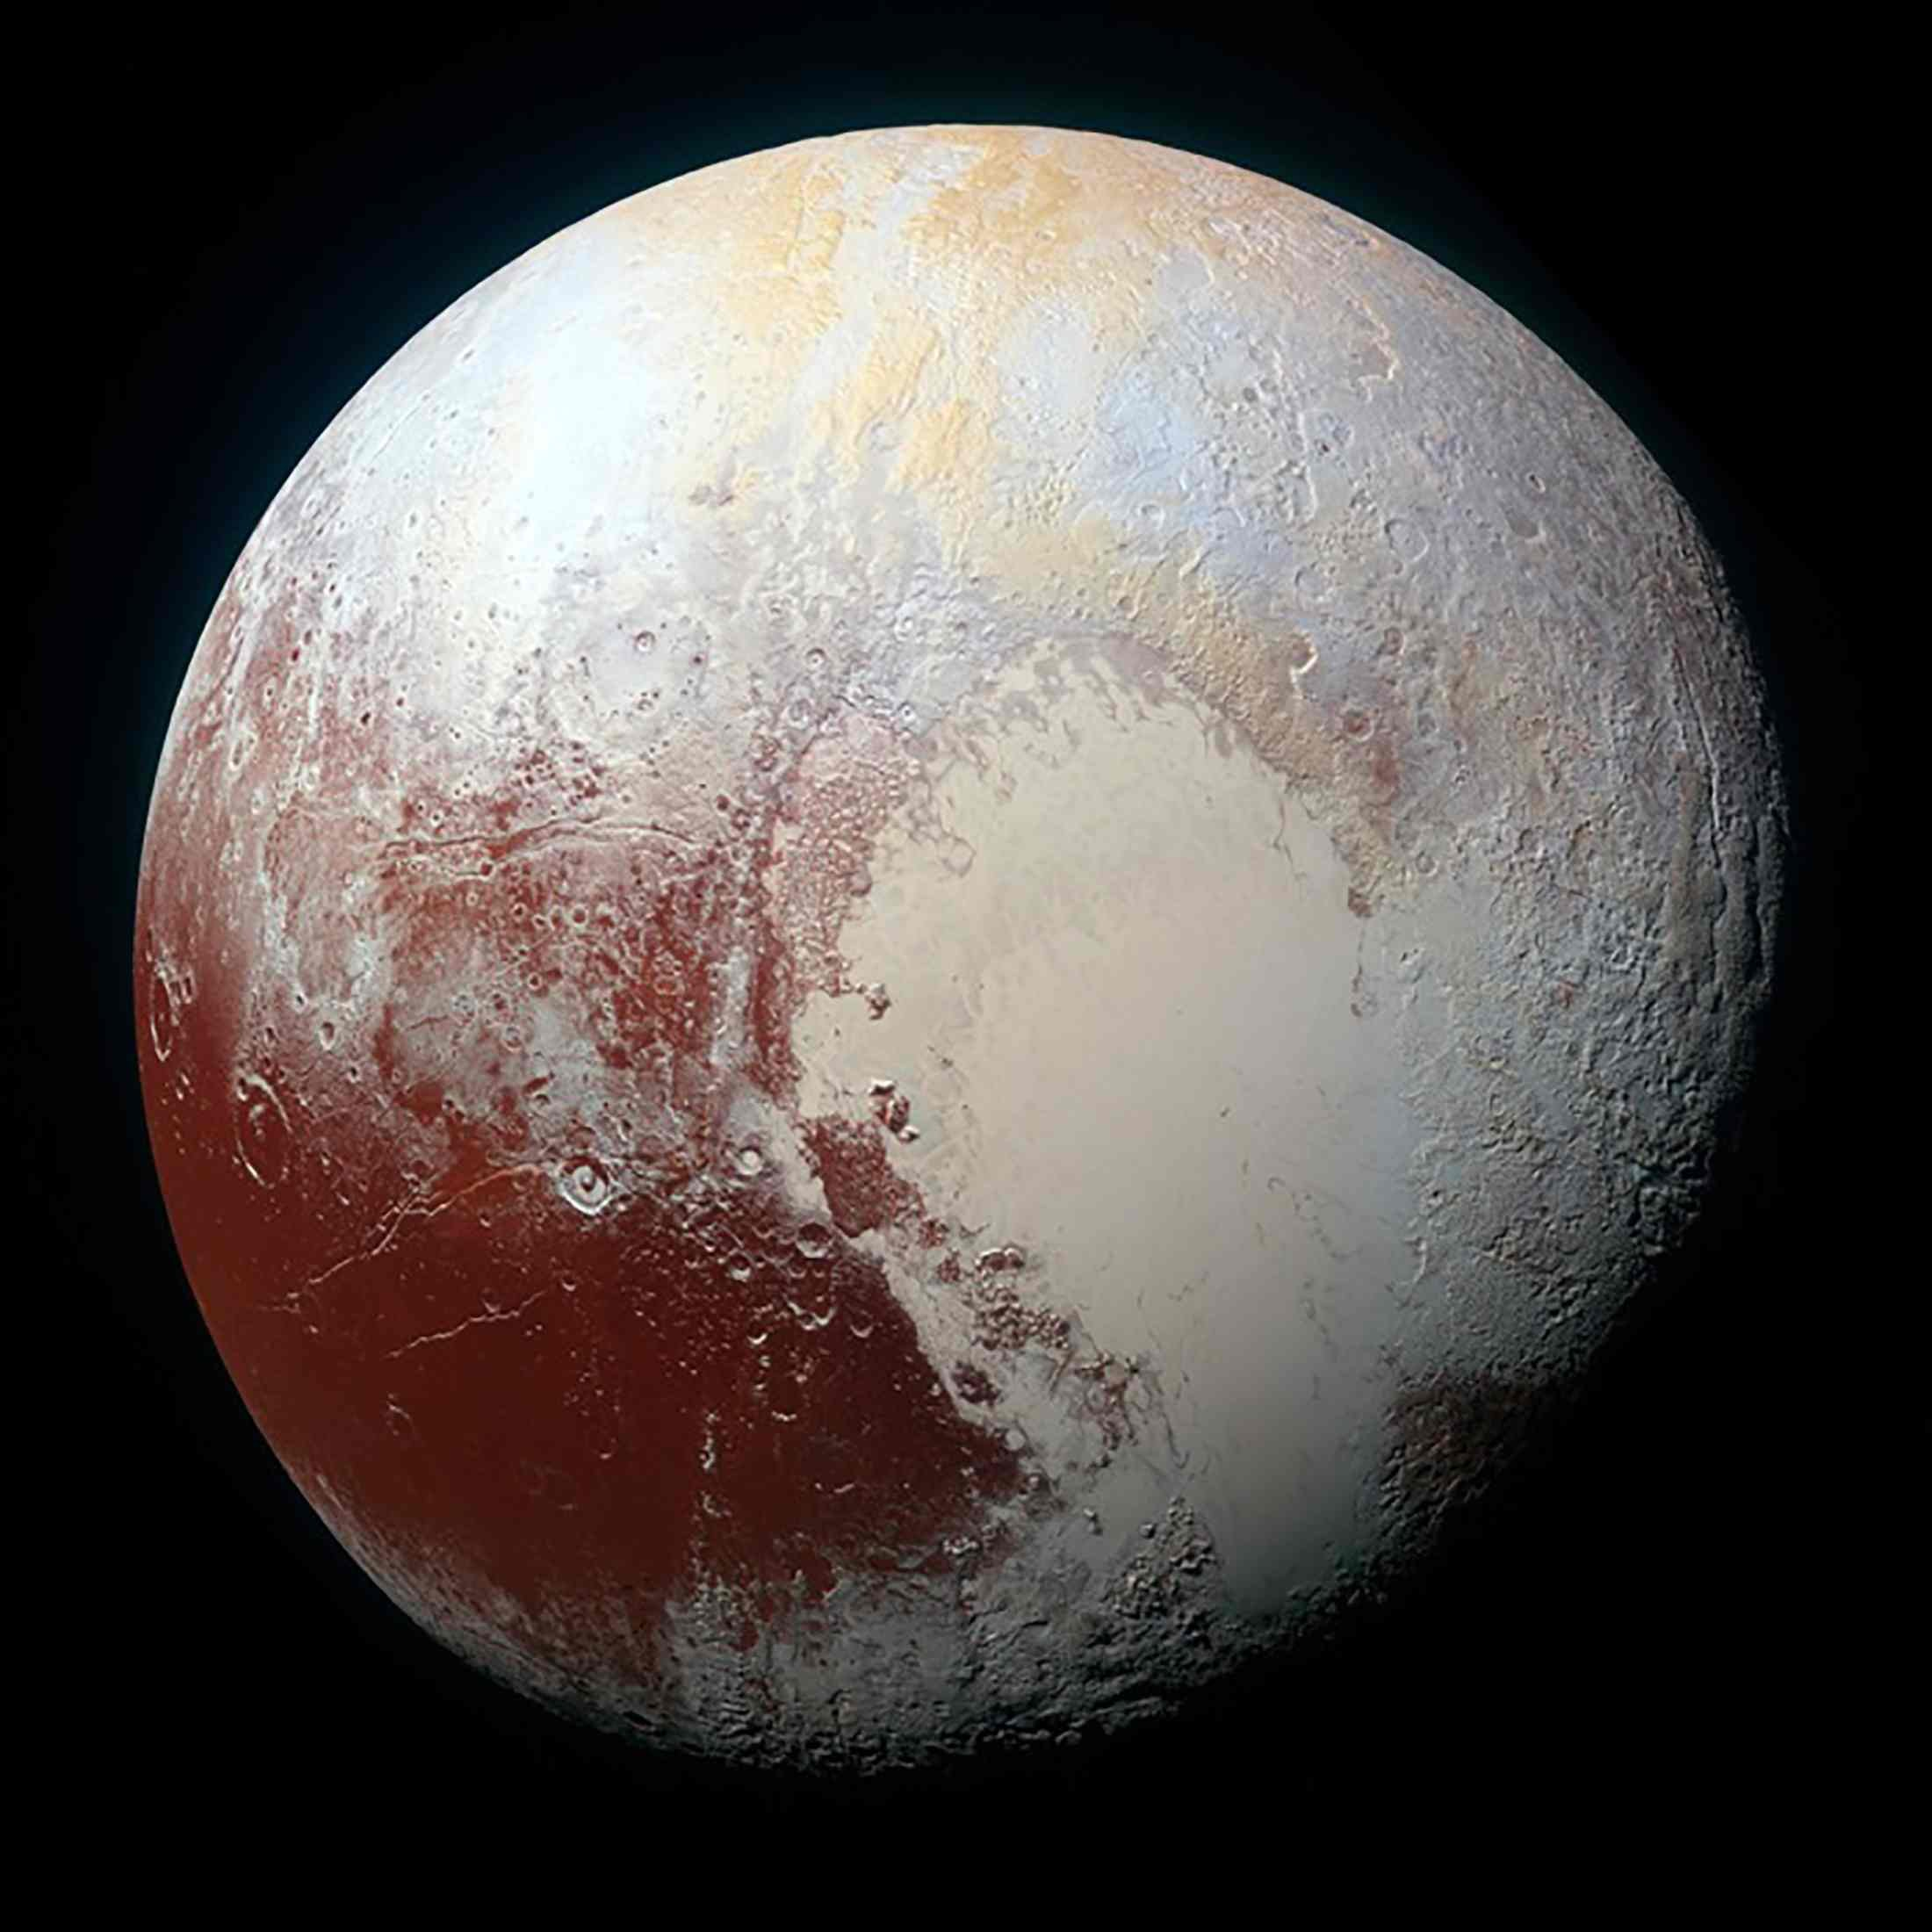 Frigid Pluto is home to more diverse terrain than expected